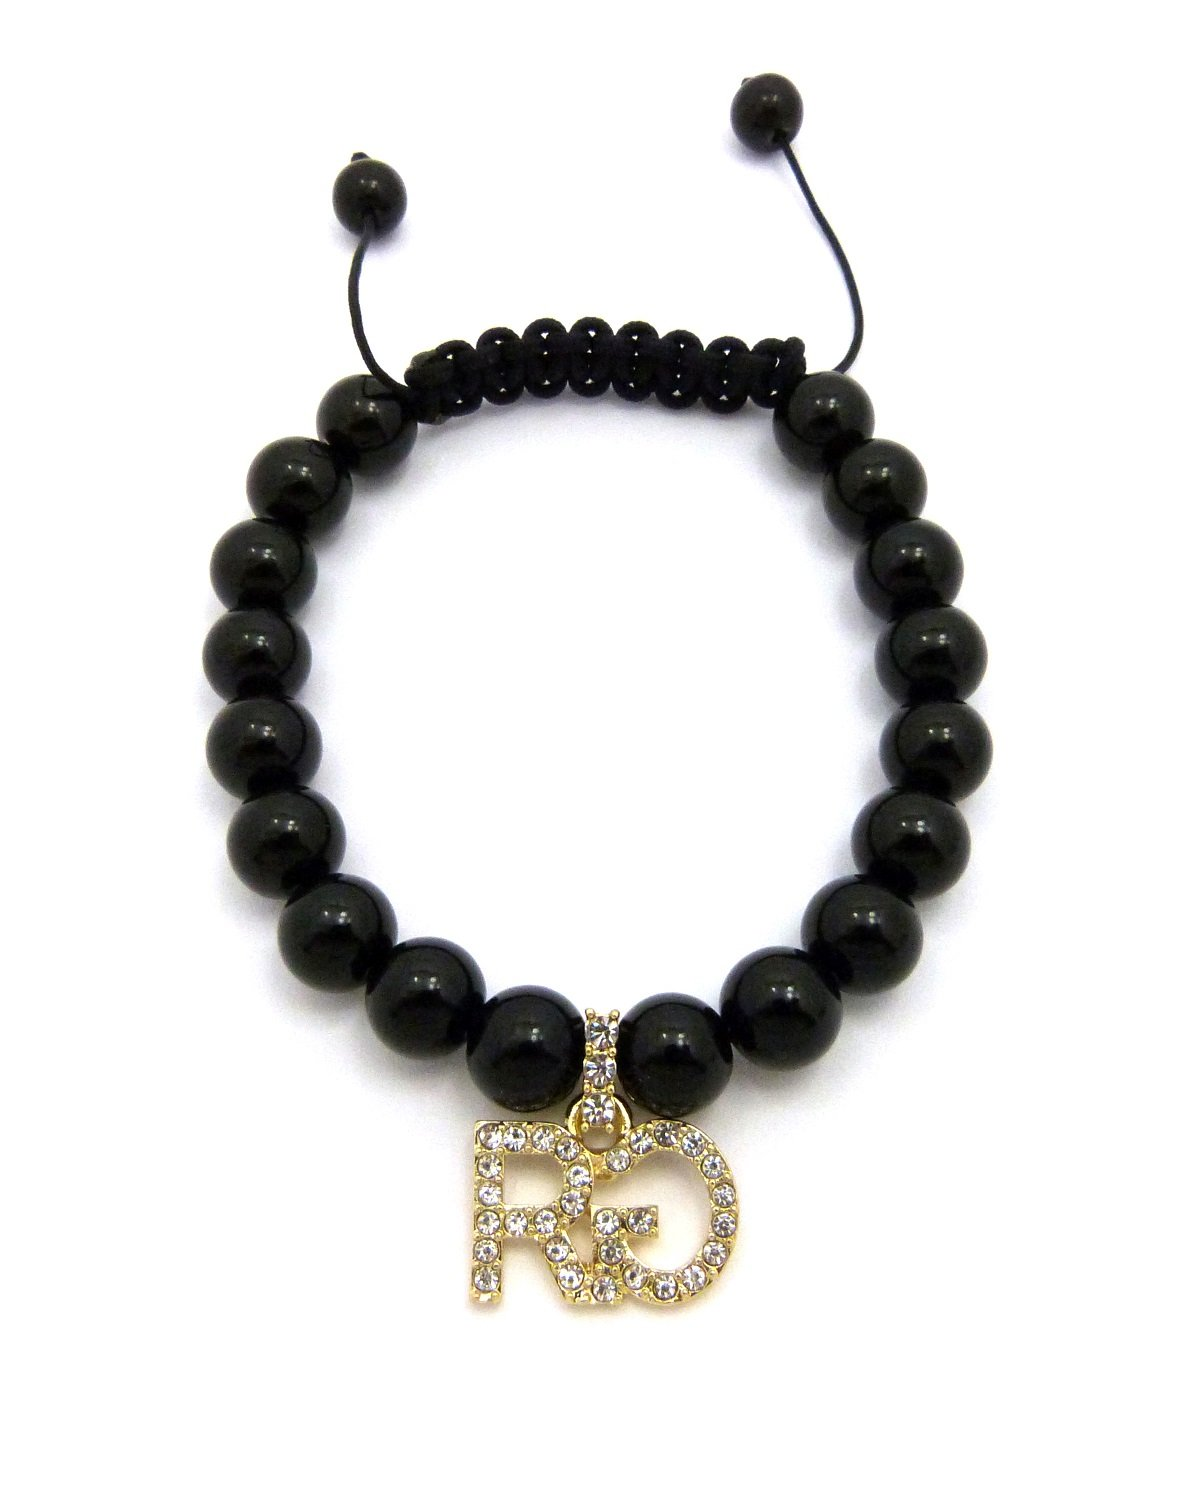 ICED OUT 'RG' RICH GANG PIECE & BLACK GLASS BEAD CHAIN HIP HOP BRACELET - RB22G